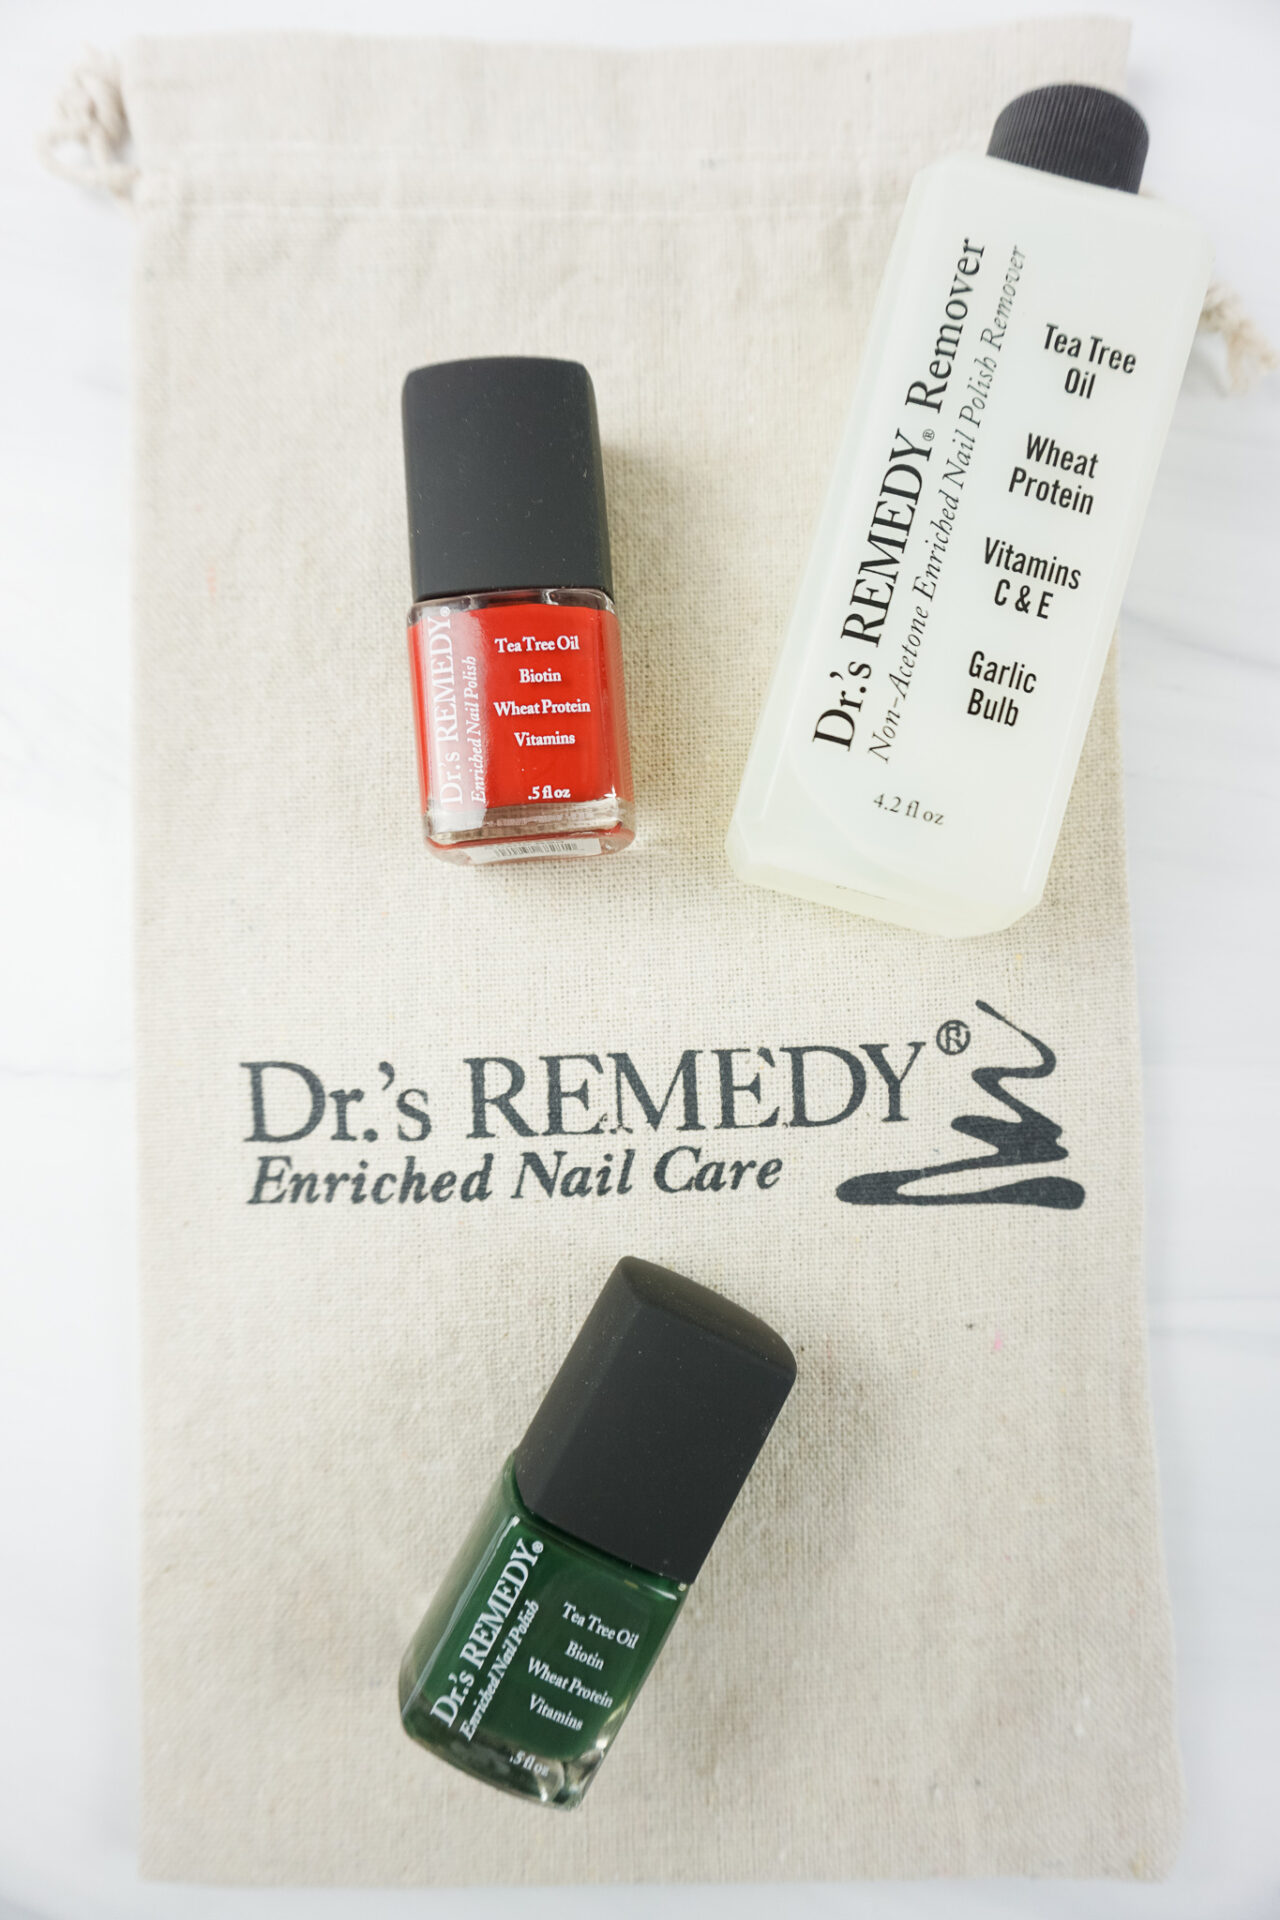 Dr.'s REMEDY